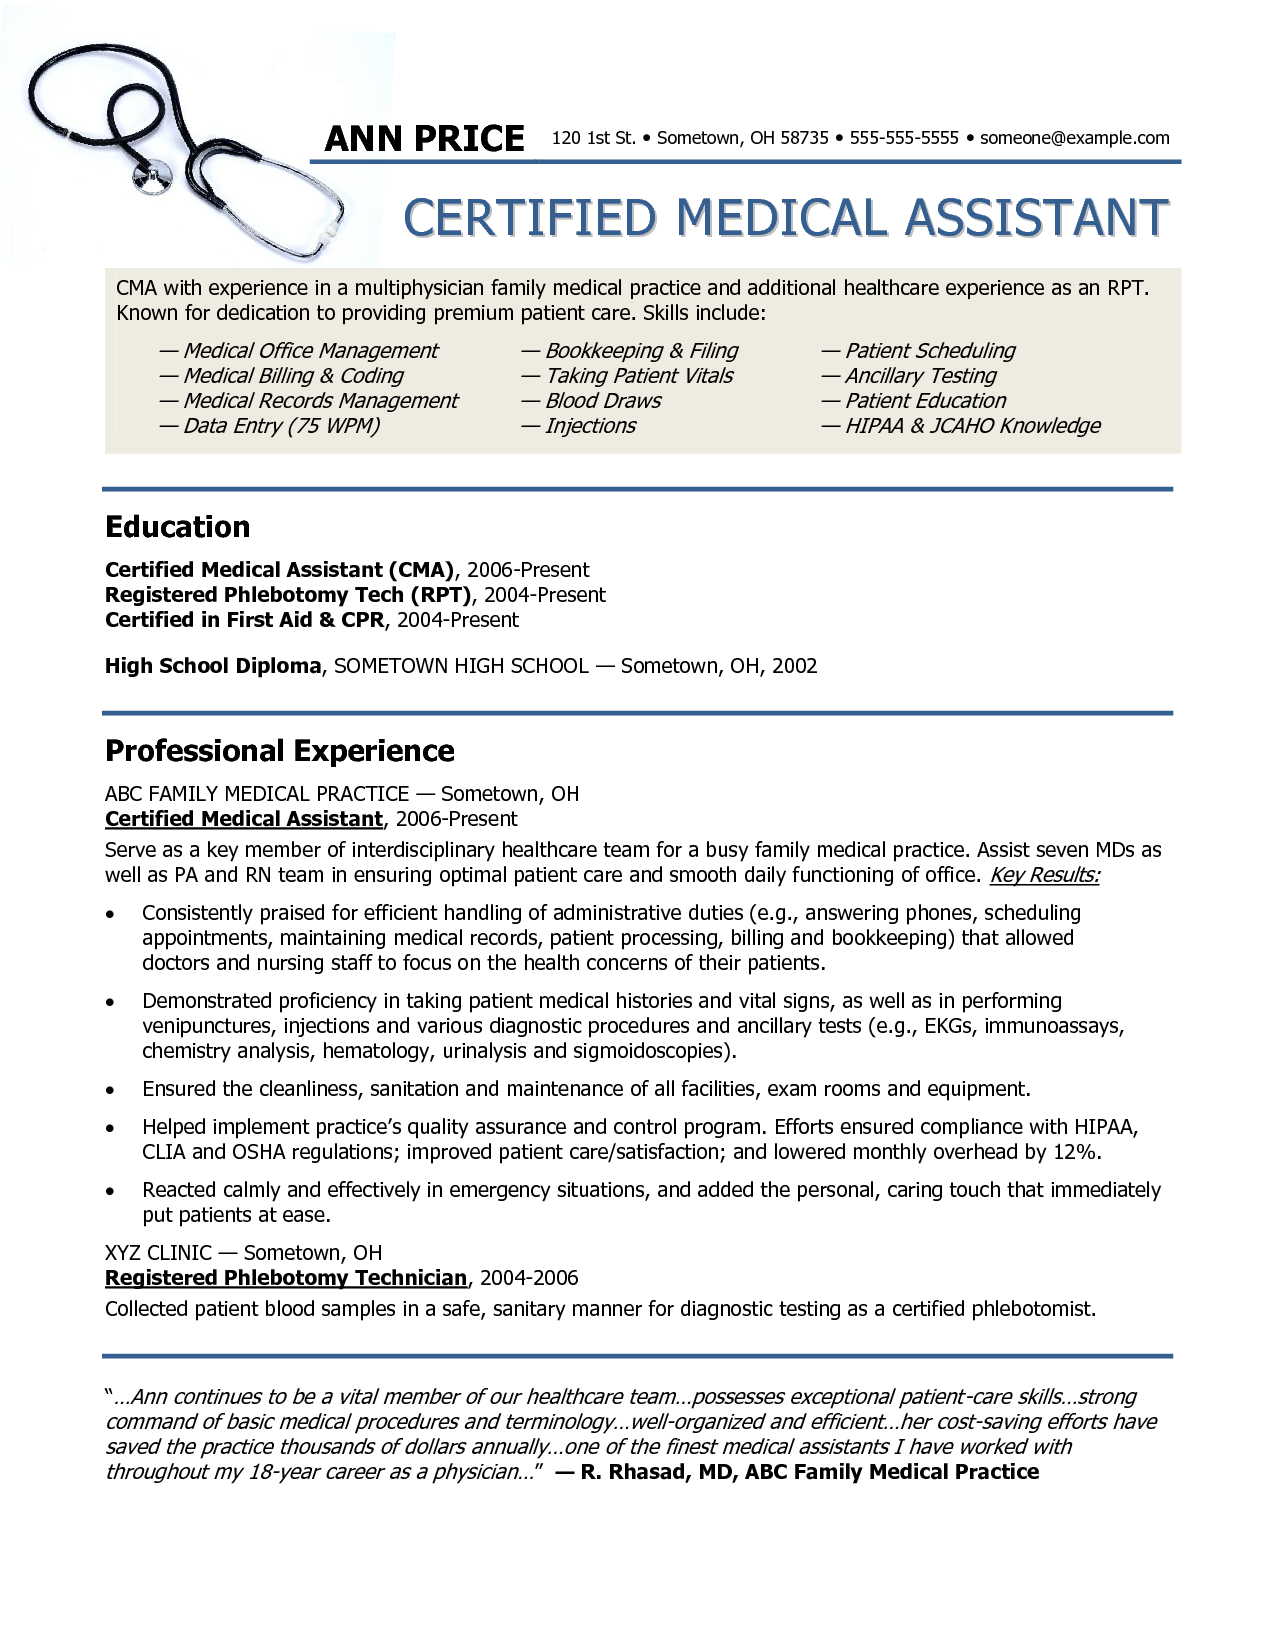 An example resume for your medical assistant application sample resume for medical assistant